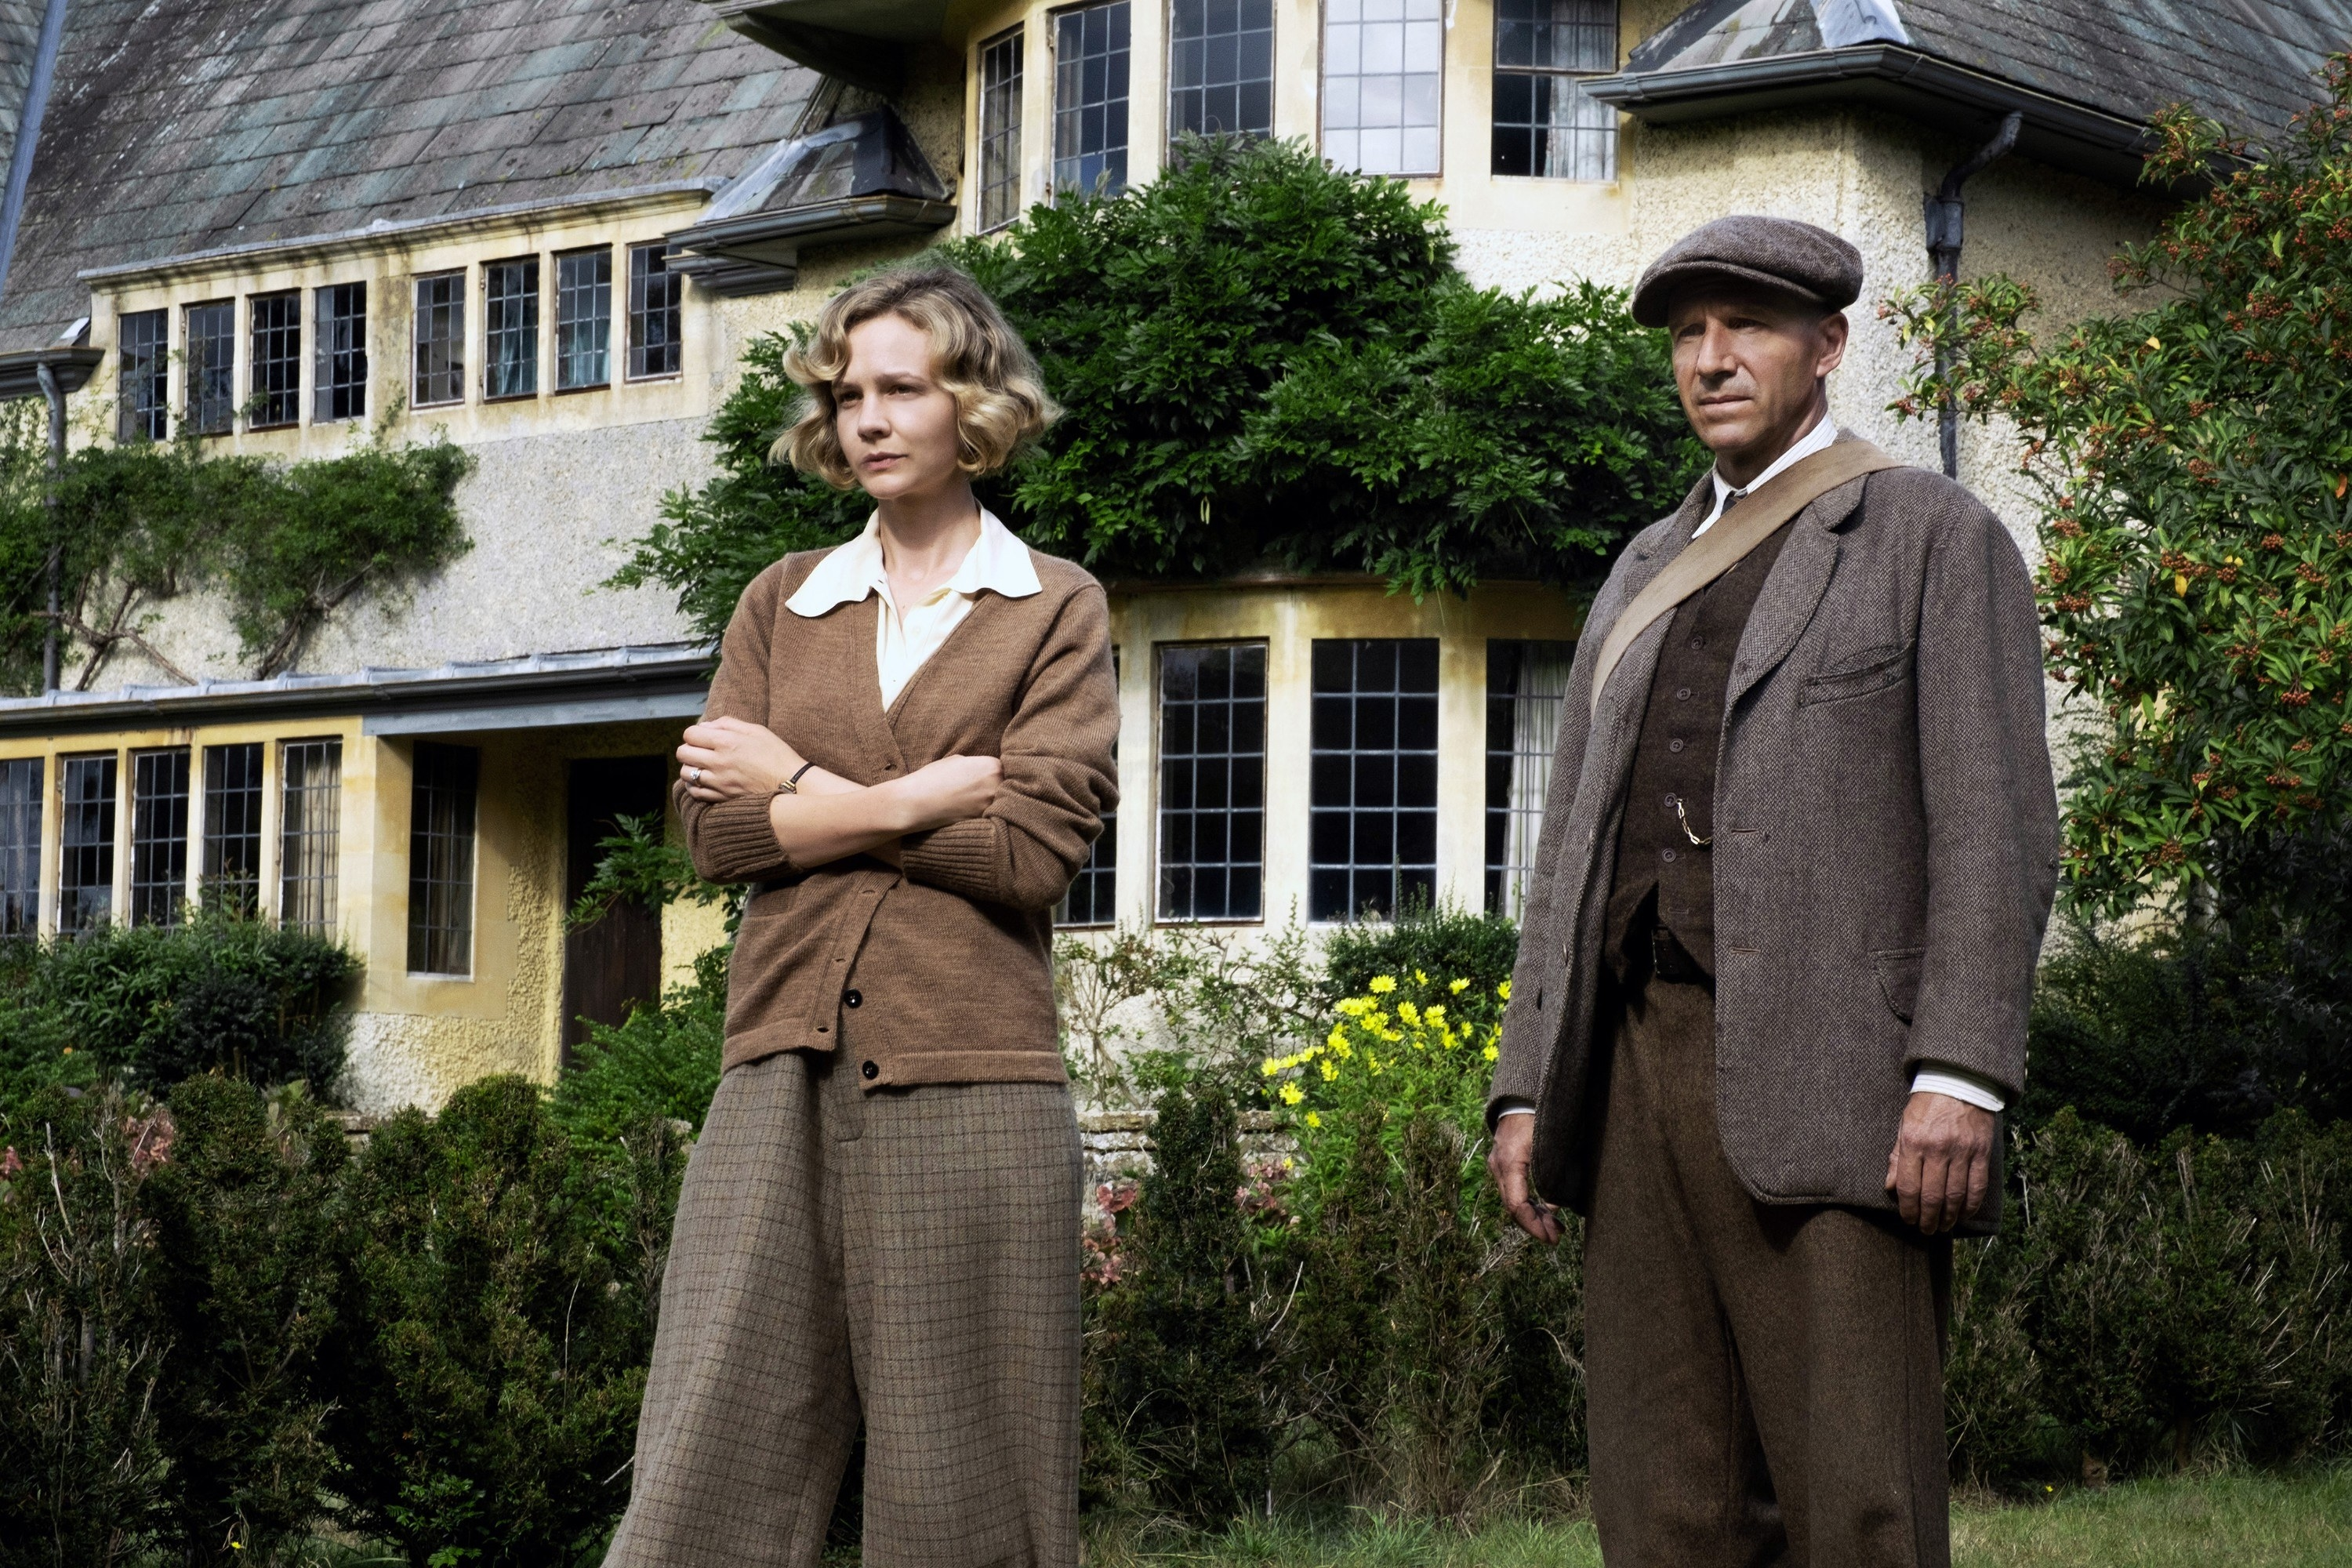 Carey Mulligan and Ralph Fiennes standing outside their house appearing to look serious